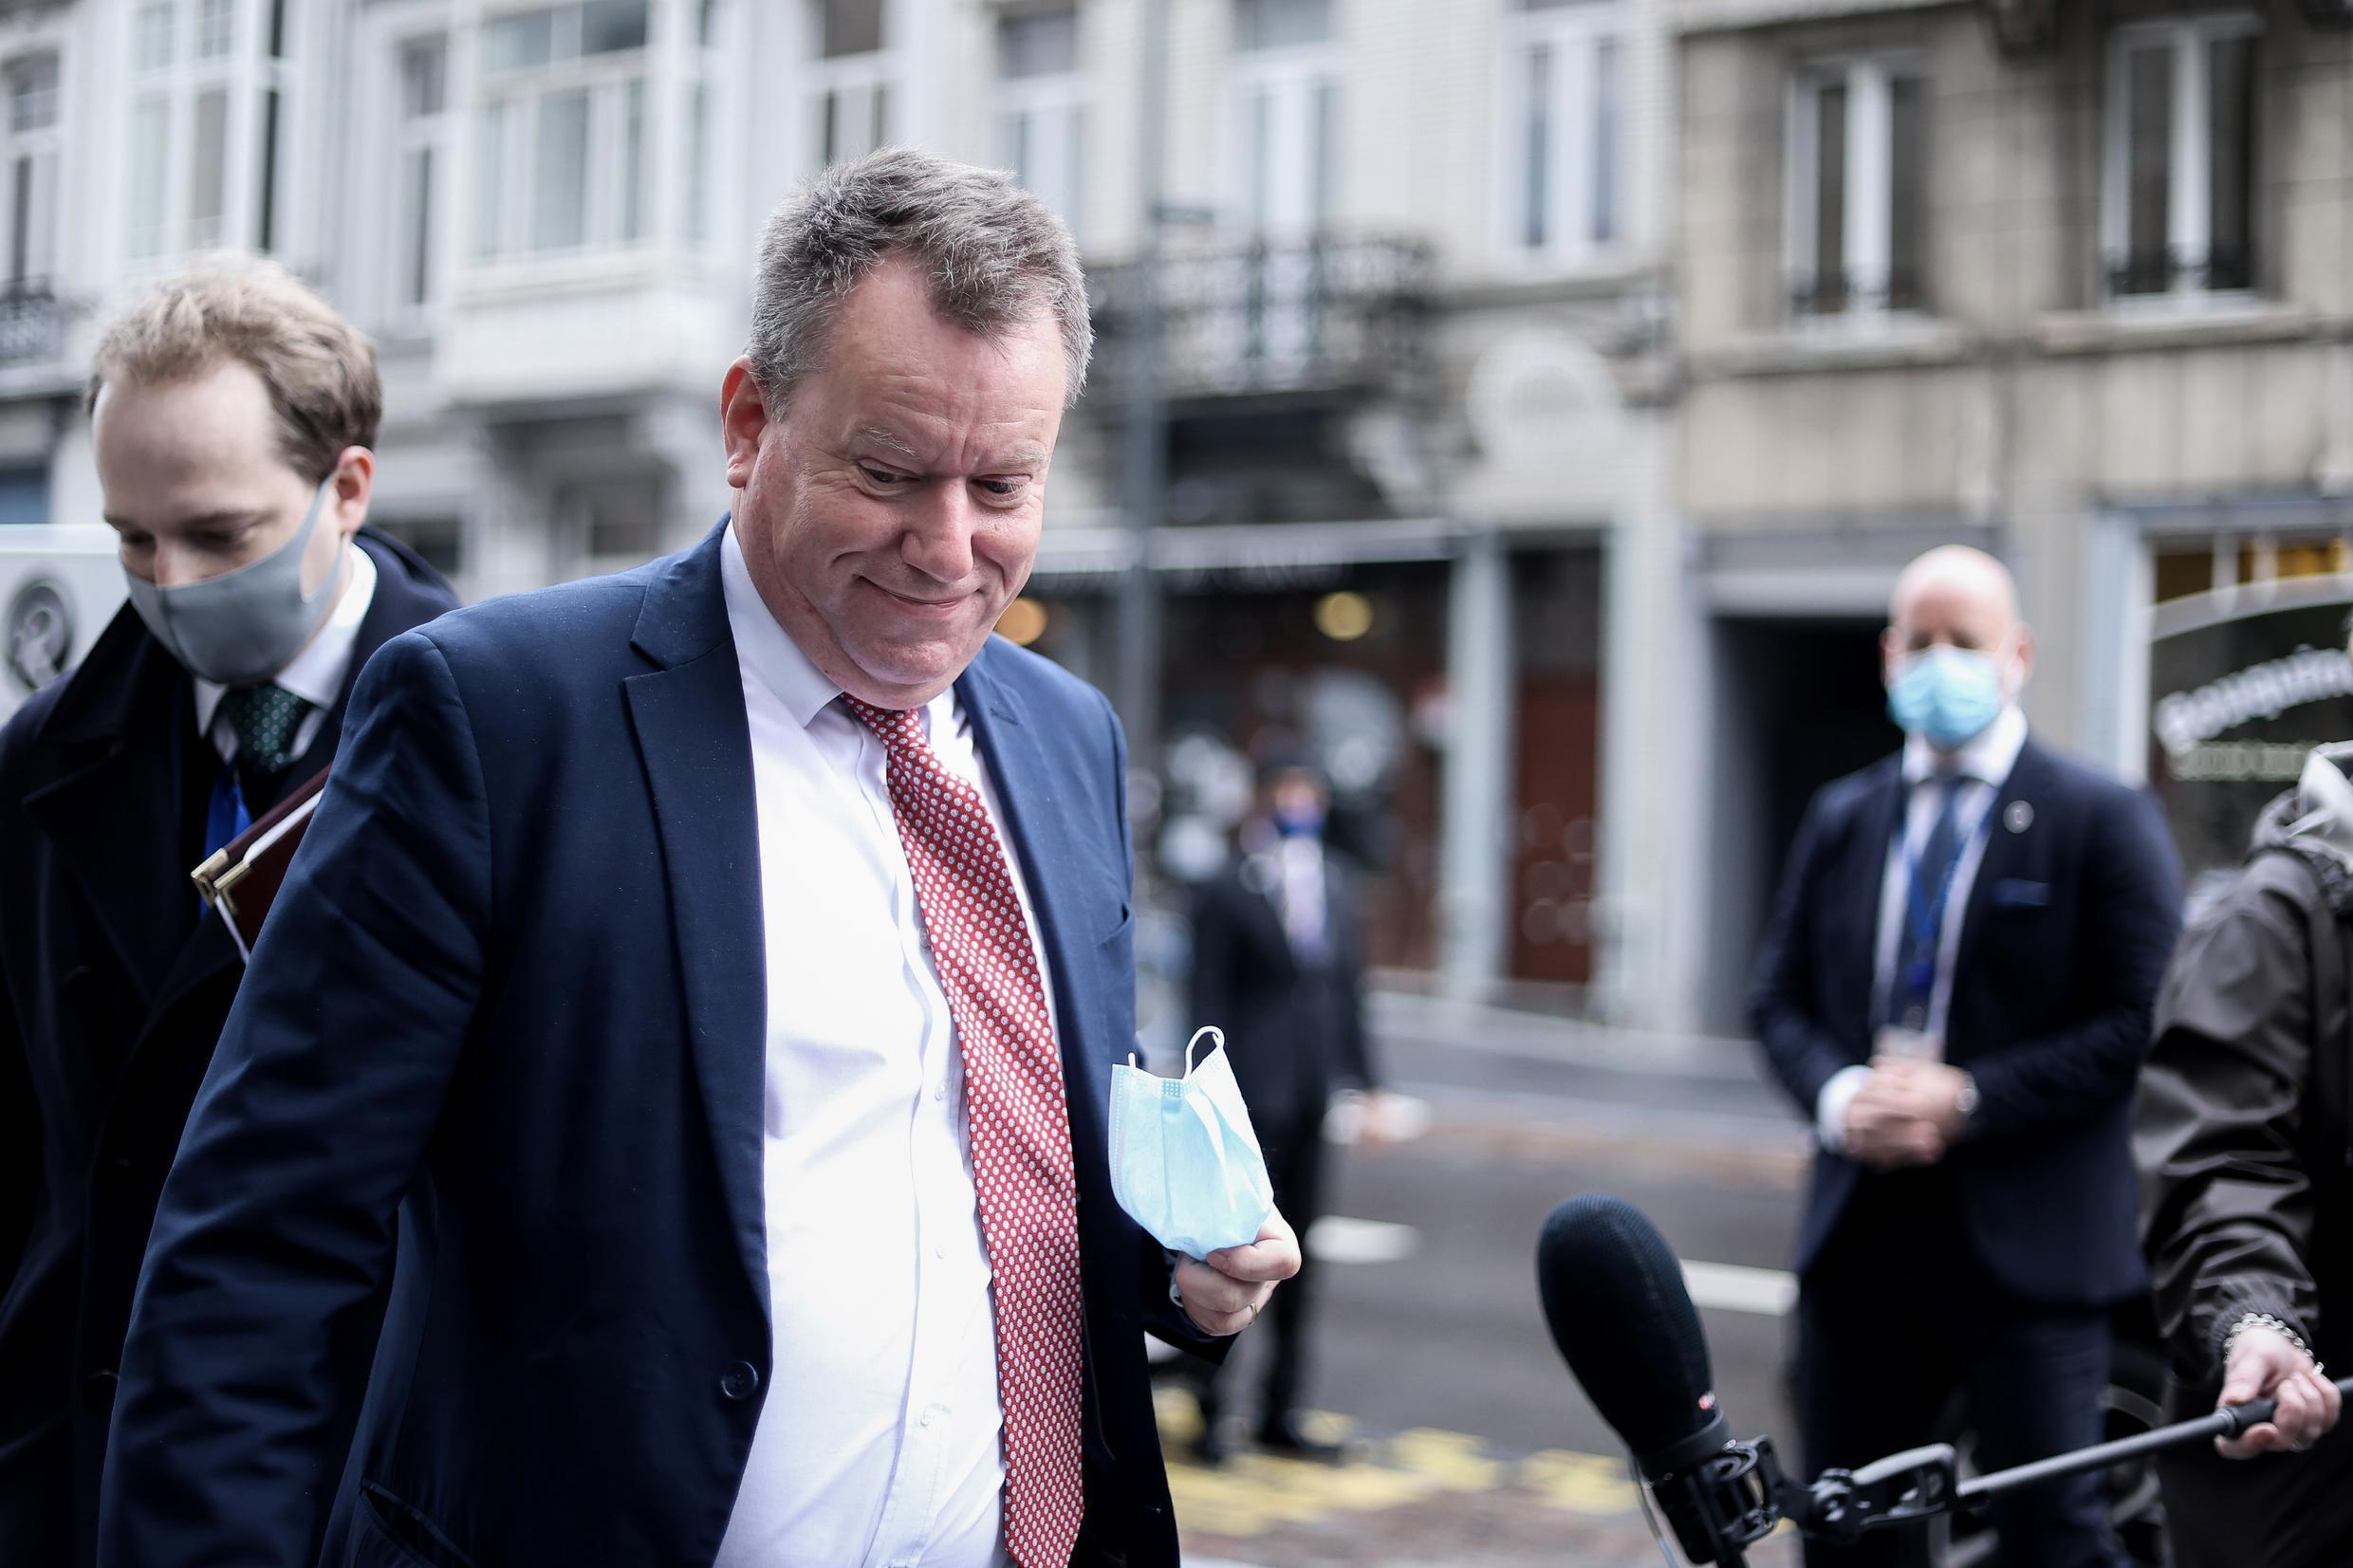 Britain's chief Brexit negotiator David Frost arrives for a meeting with the head of the European Commission's Working Group for Relations with Britain in Brussels on November 16, 2020.